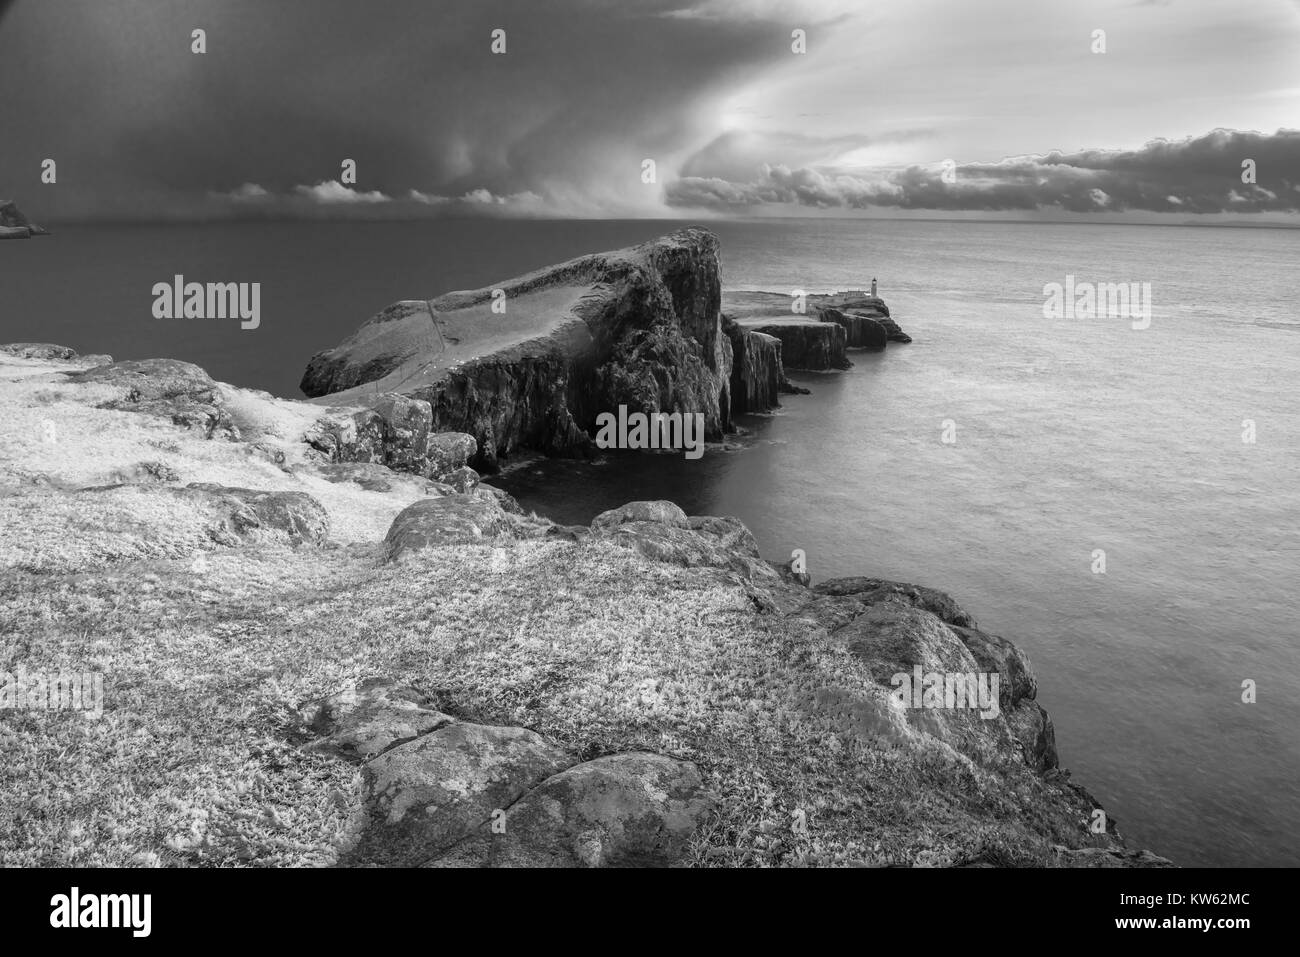 Neist Point Peninsula with White Lighthouse - Isle of Skye Landscape with Stormy Clouds on Sky, Dramatic Cliffs - Stock Image